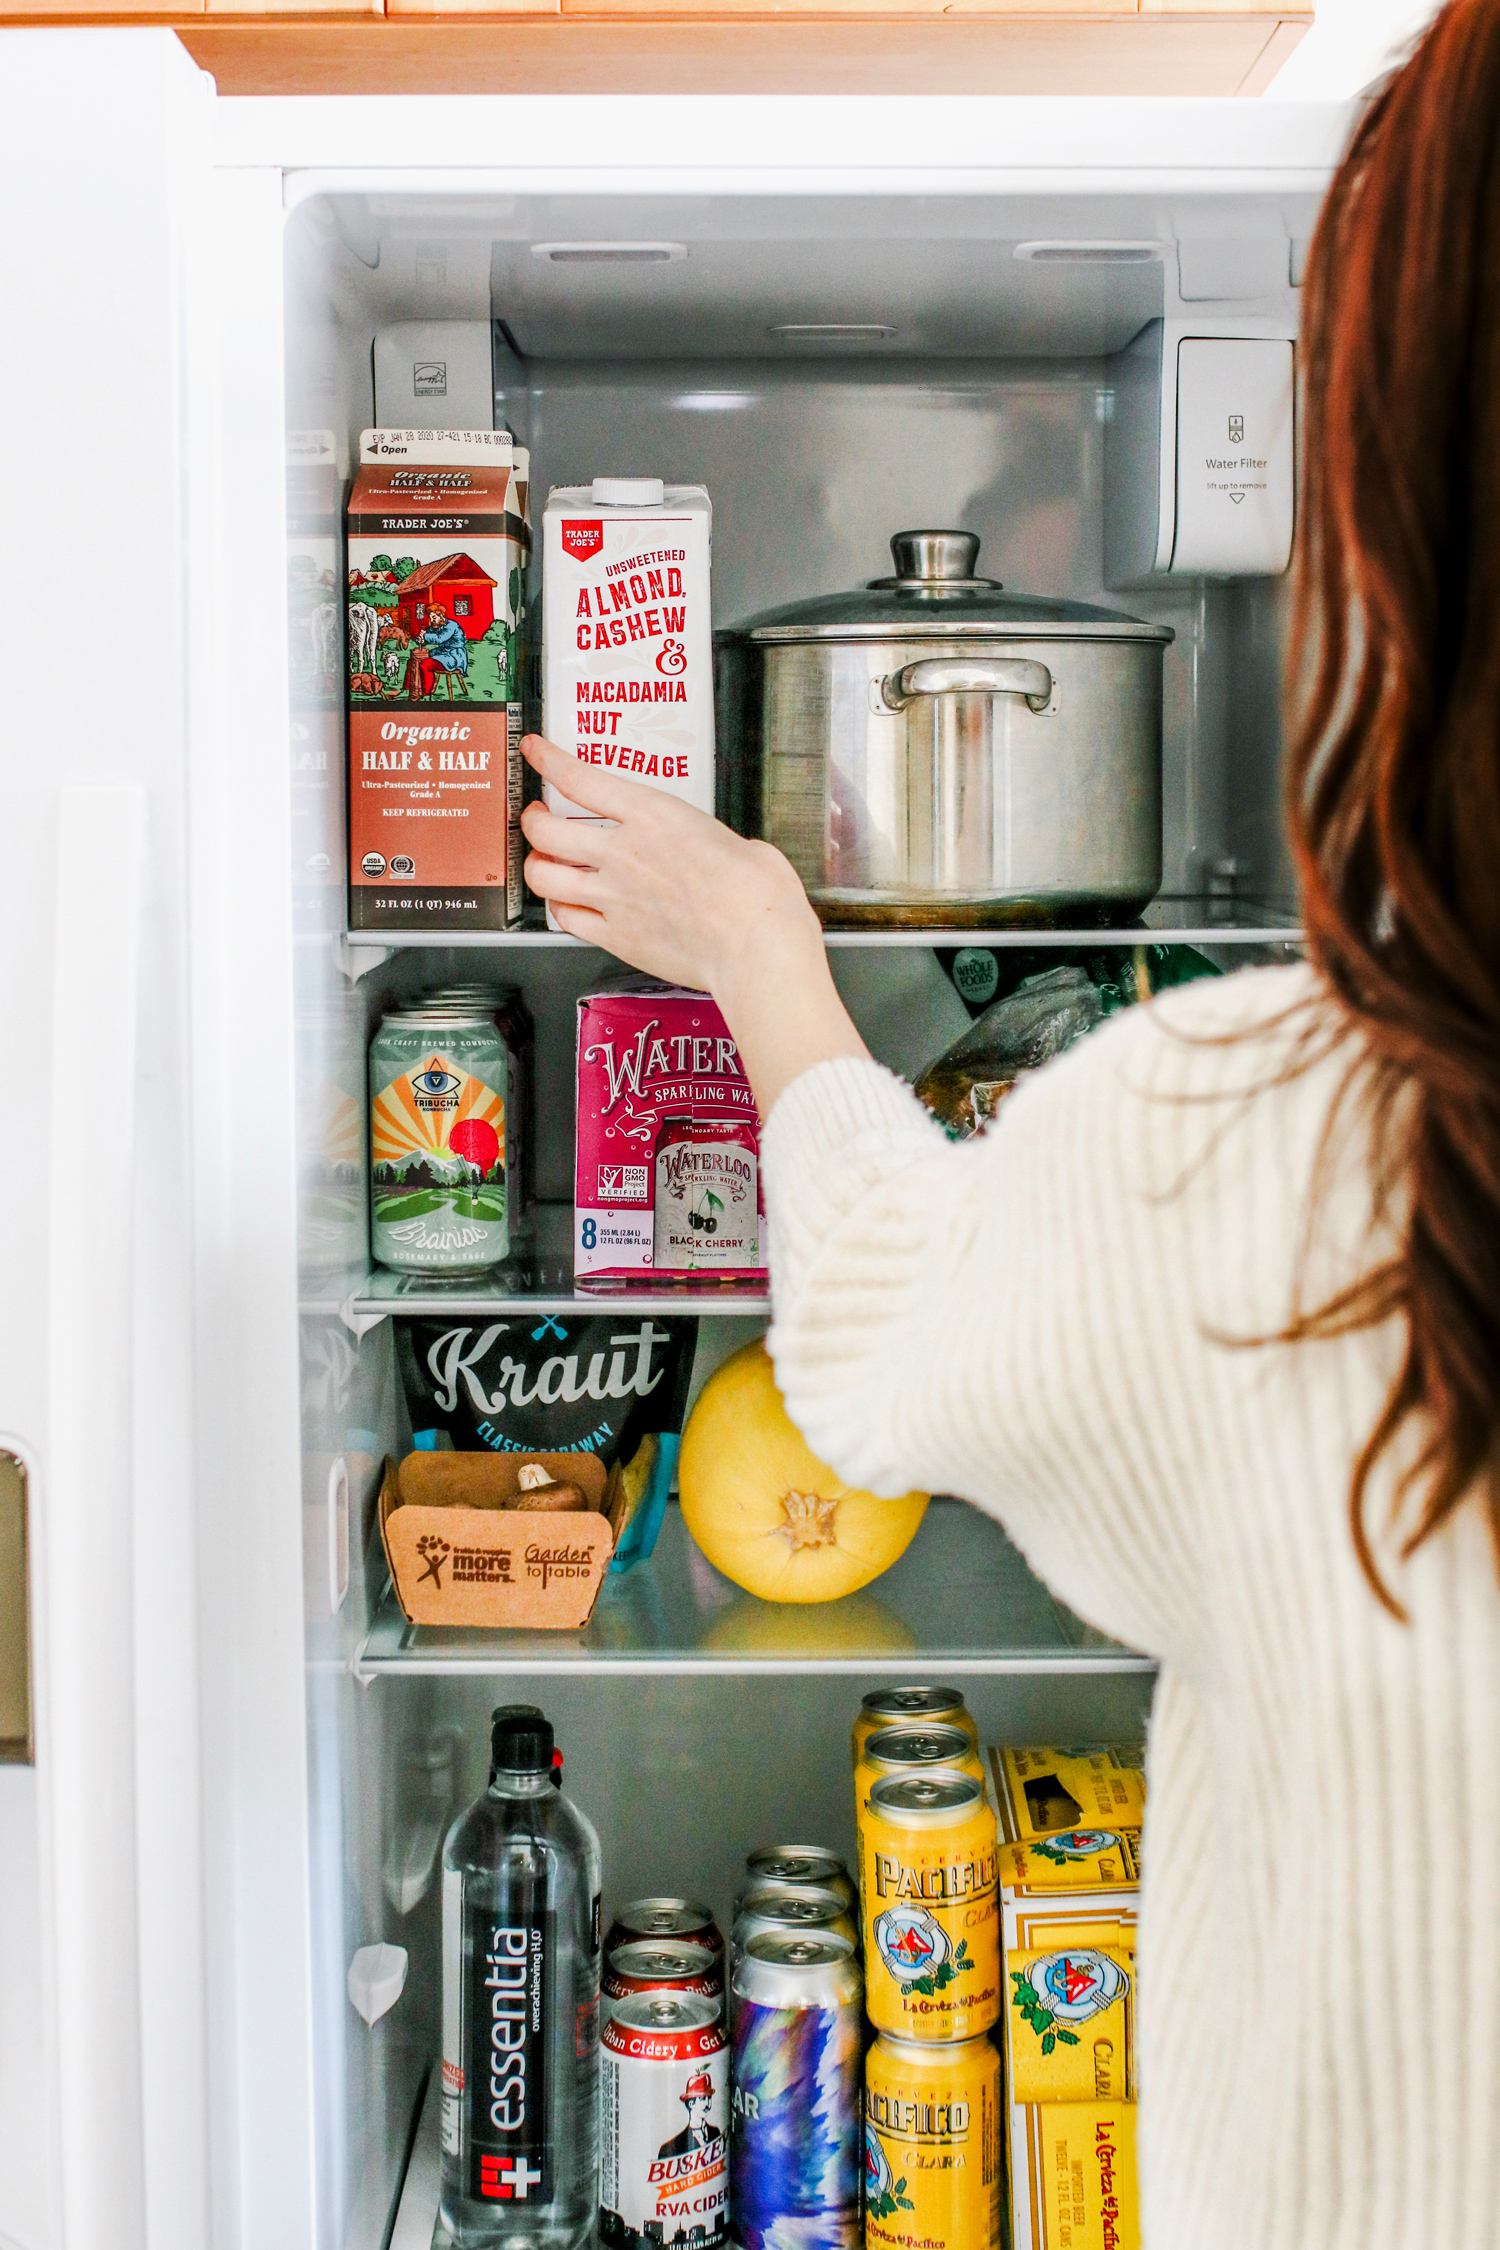 Mystery smell coming from the fridge? Learn how to deep clean your refrigerator, and get 2 easy recipes for disinfecting and deodorizing it.